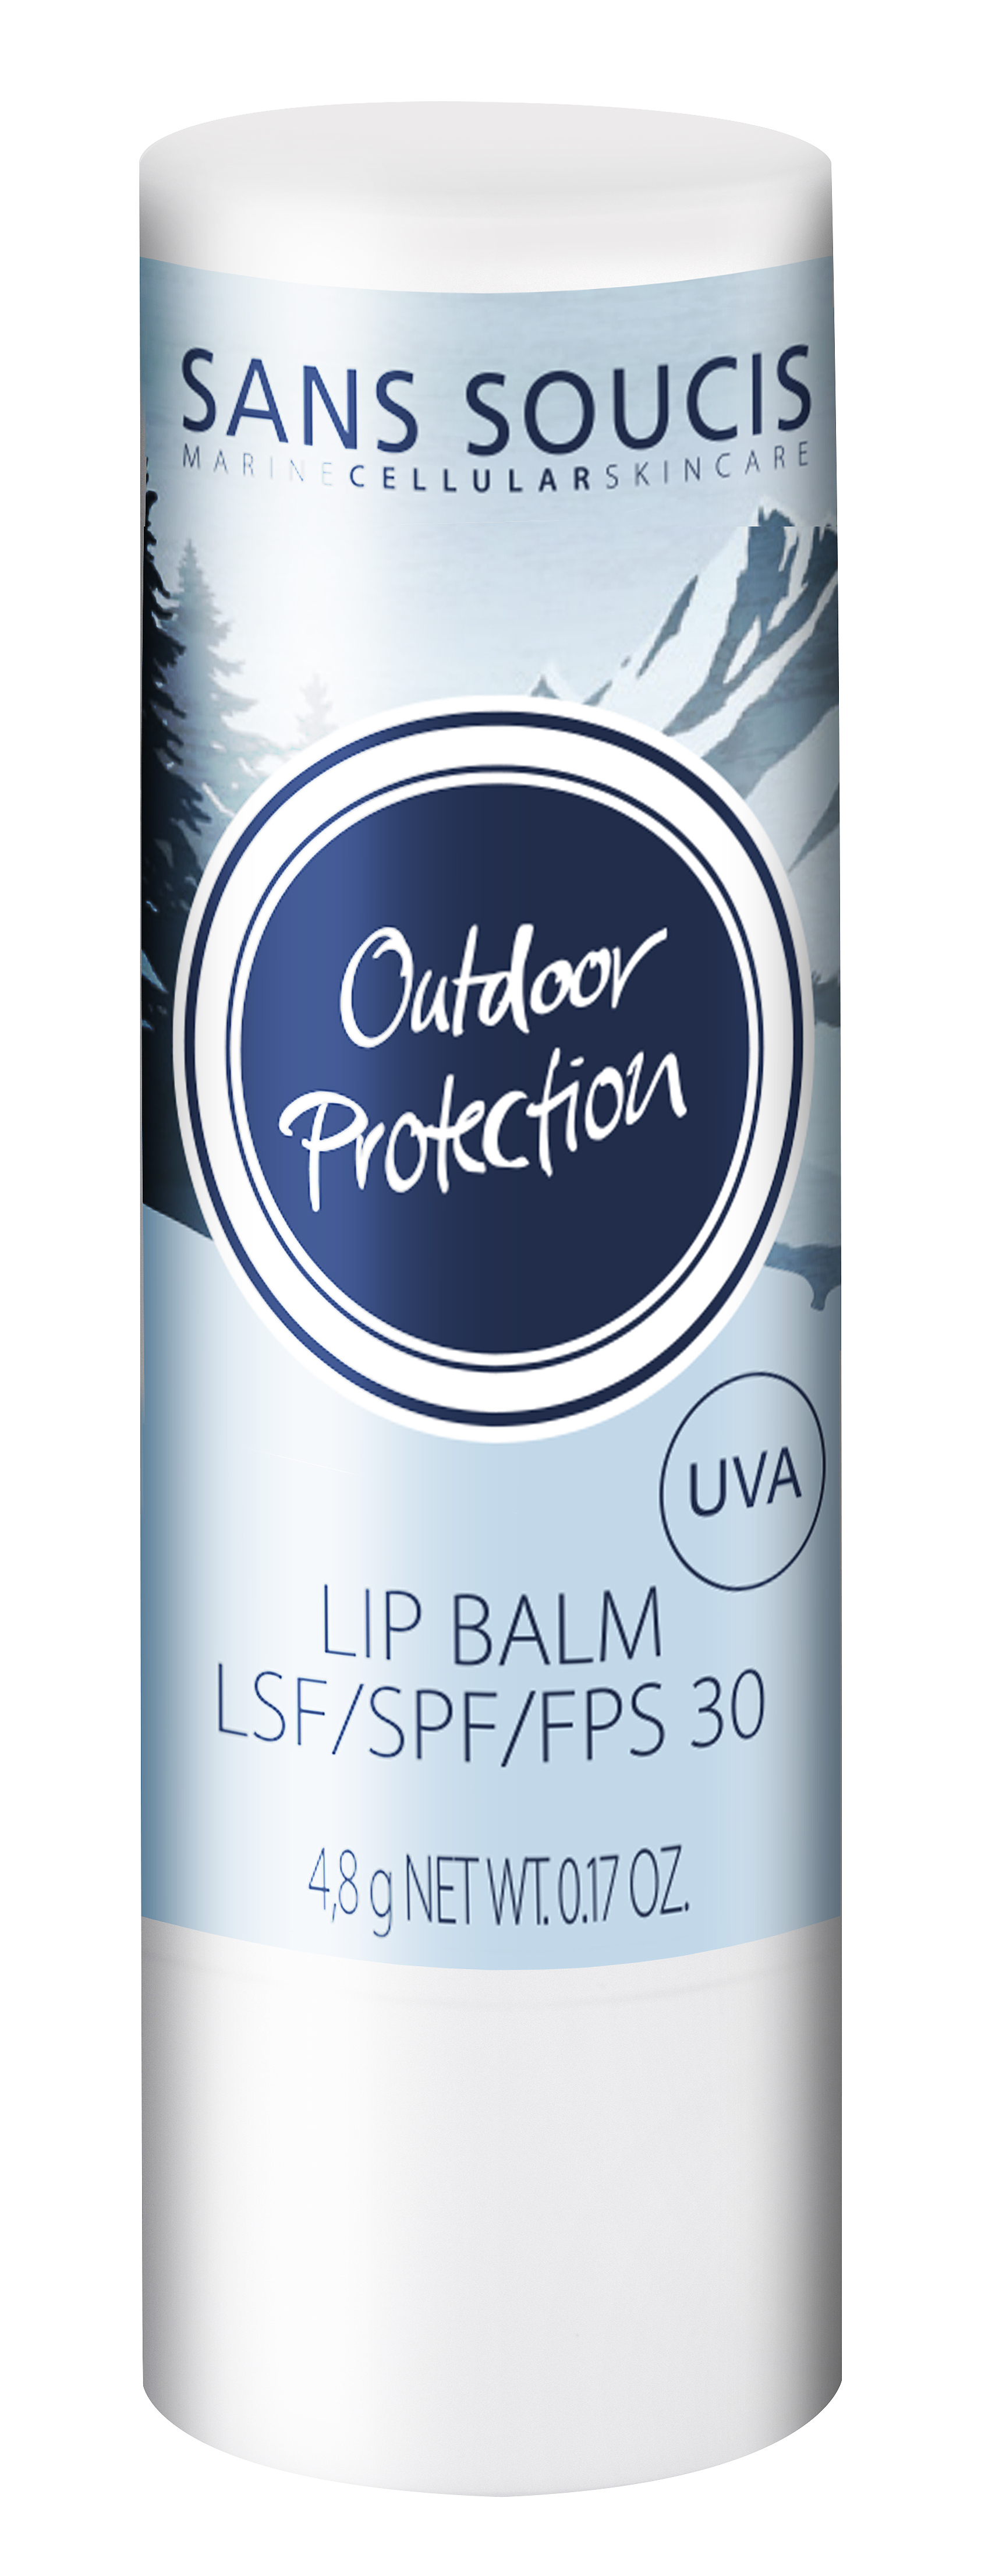 SANS SOUCIS Бальзам для губ защитный / Outdoor Protection Lip Balm SPF 30 4,8 г sans soucis крем вв spf 15 натуральный aqua clear skin beauty balm cream spf 15 natural 40мл